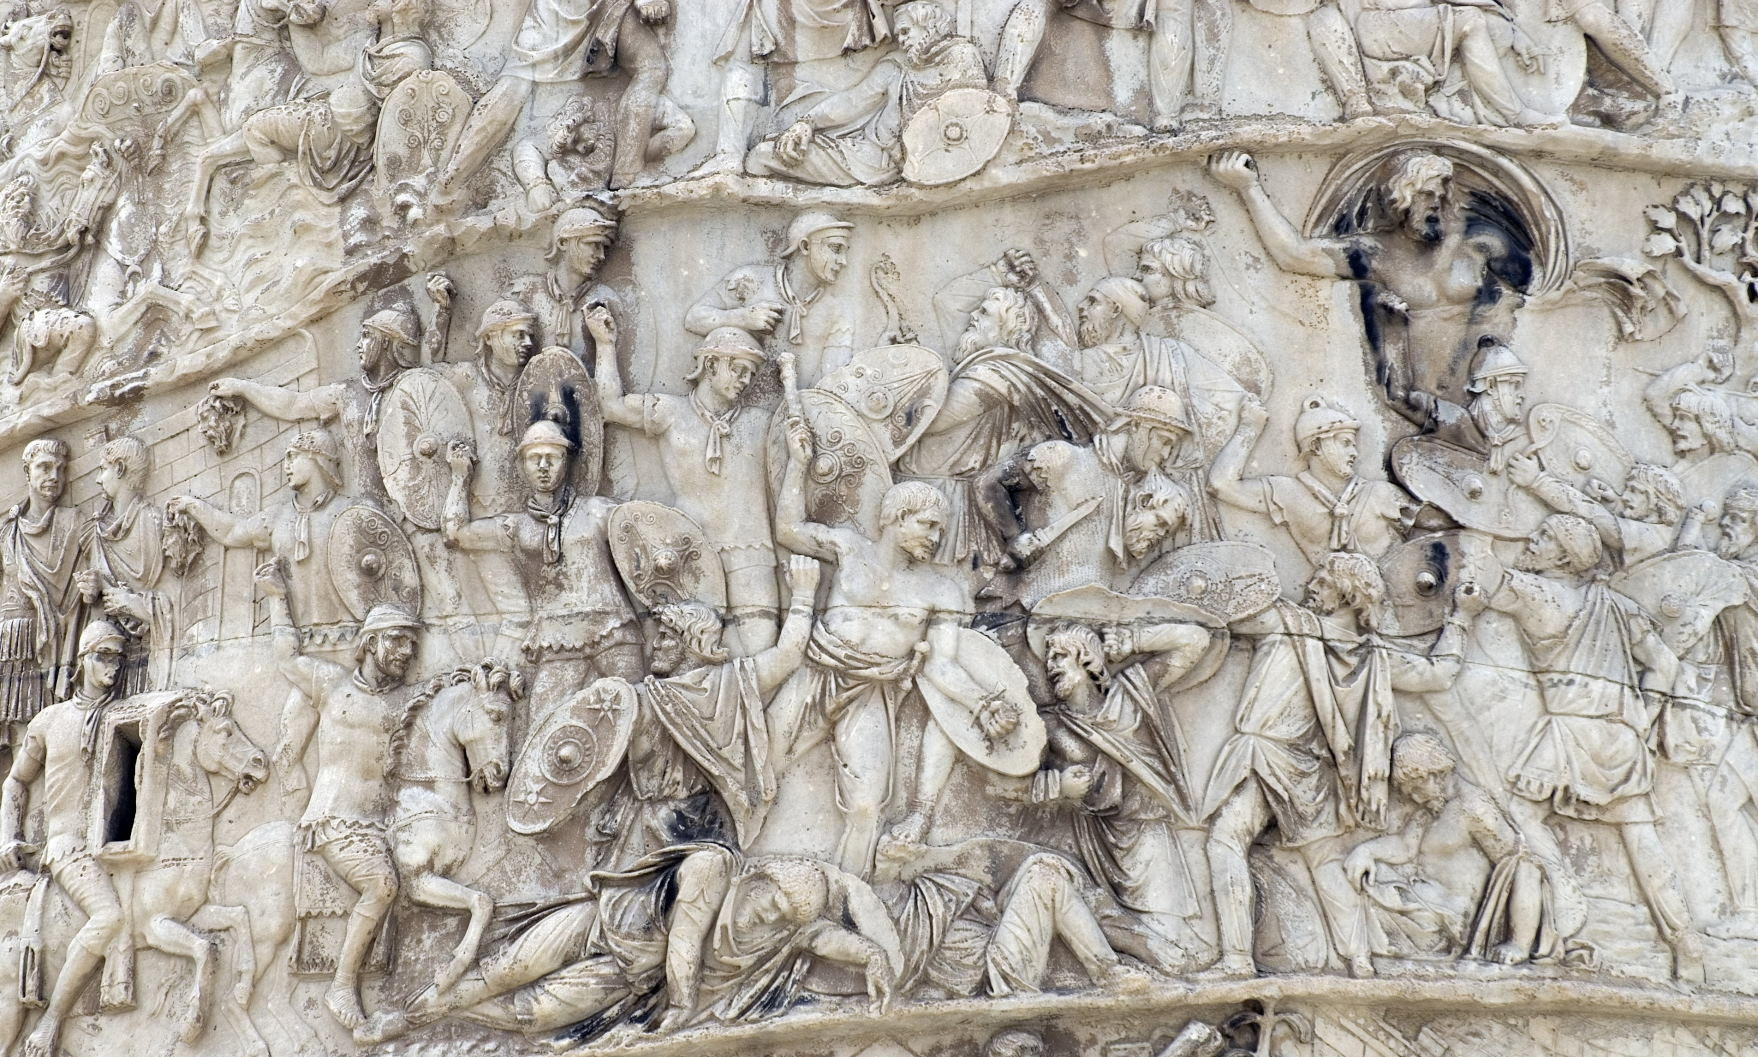 Carving detail, Trajan's Column (in Italian Colonna Traiana) (2)